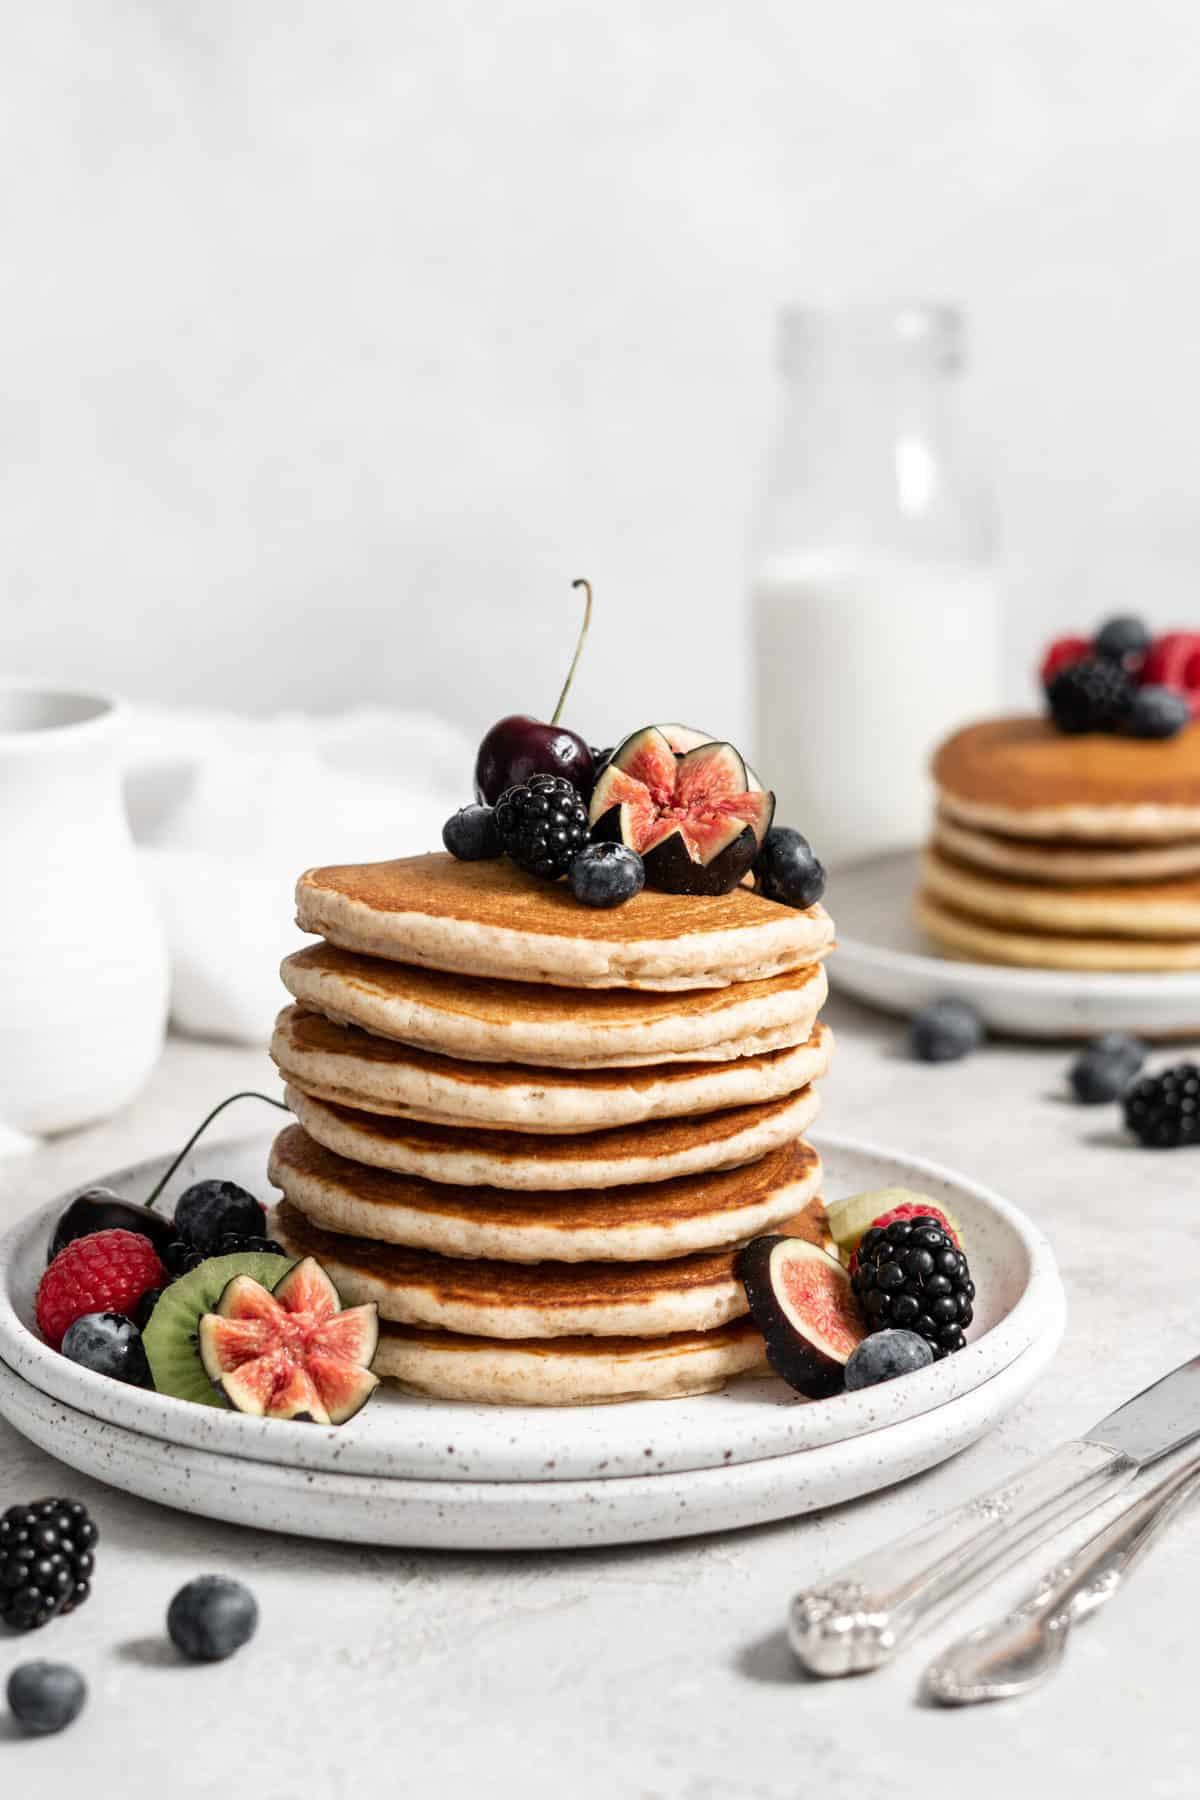 Protein pancakes with berries and fruits.